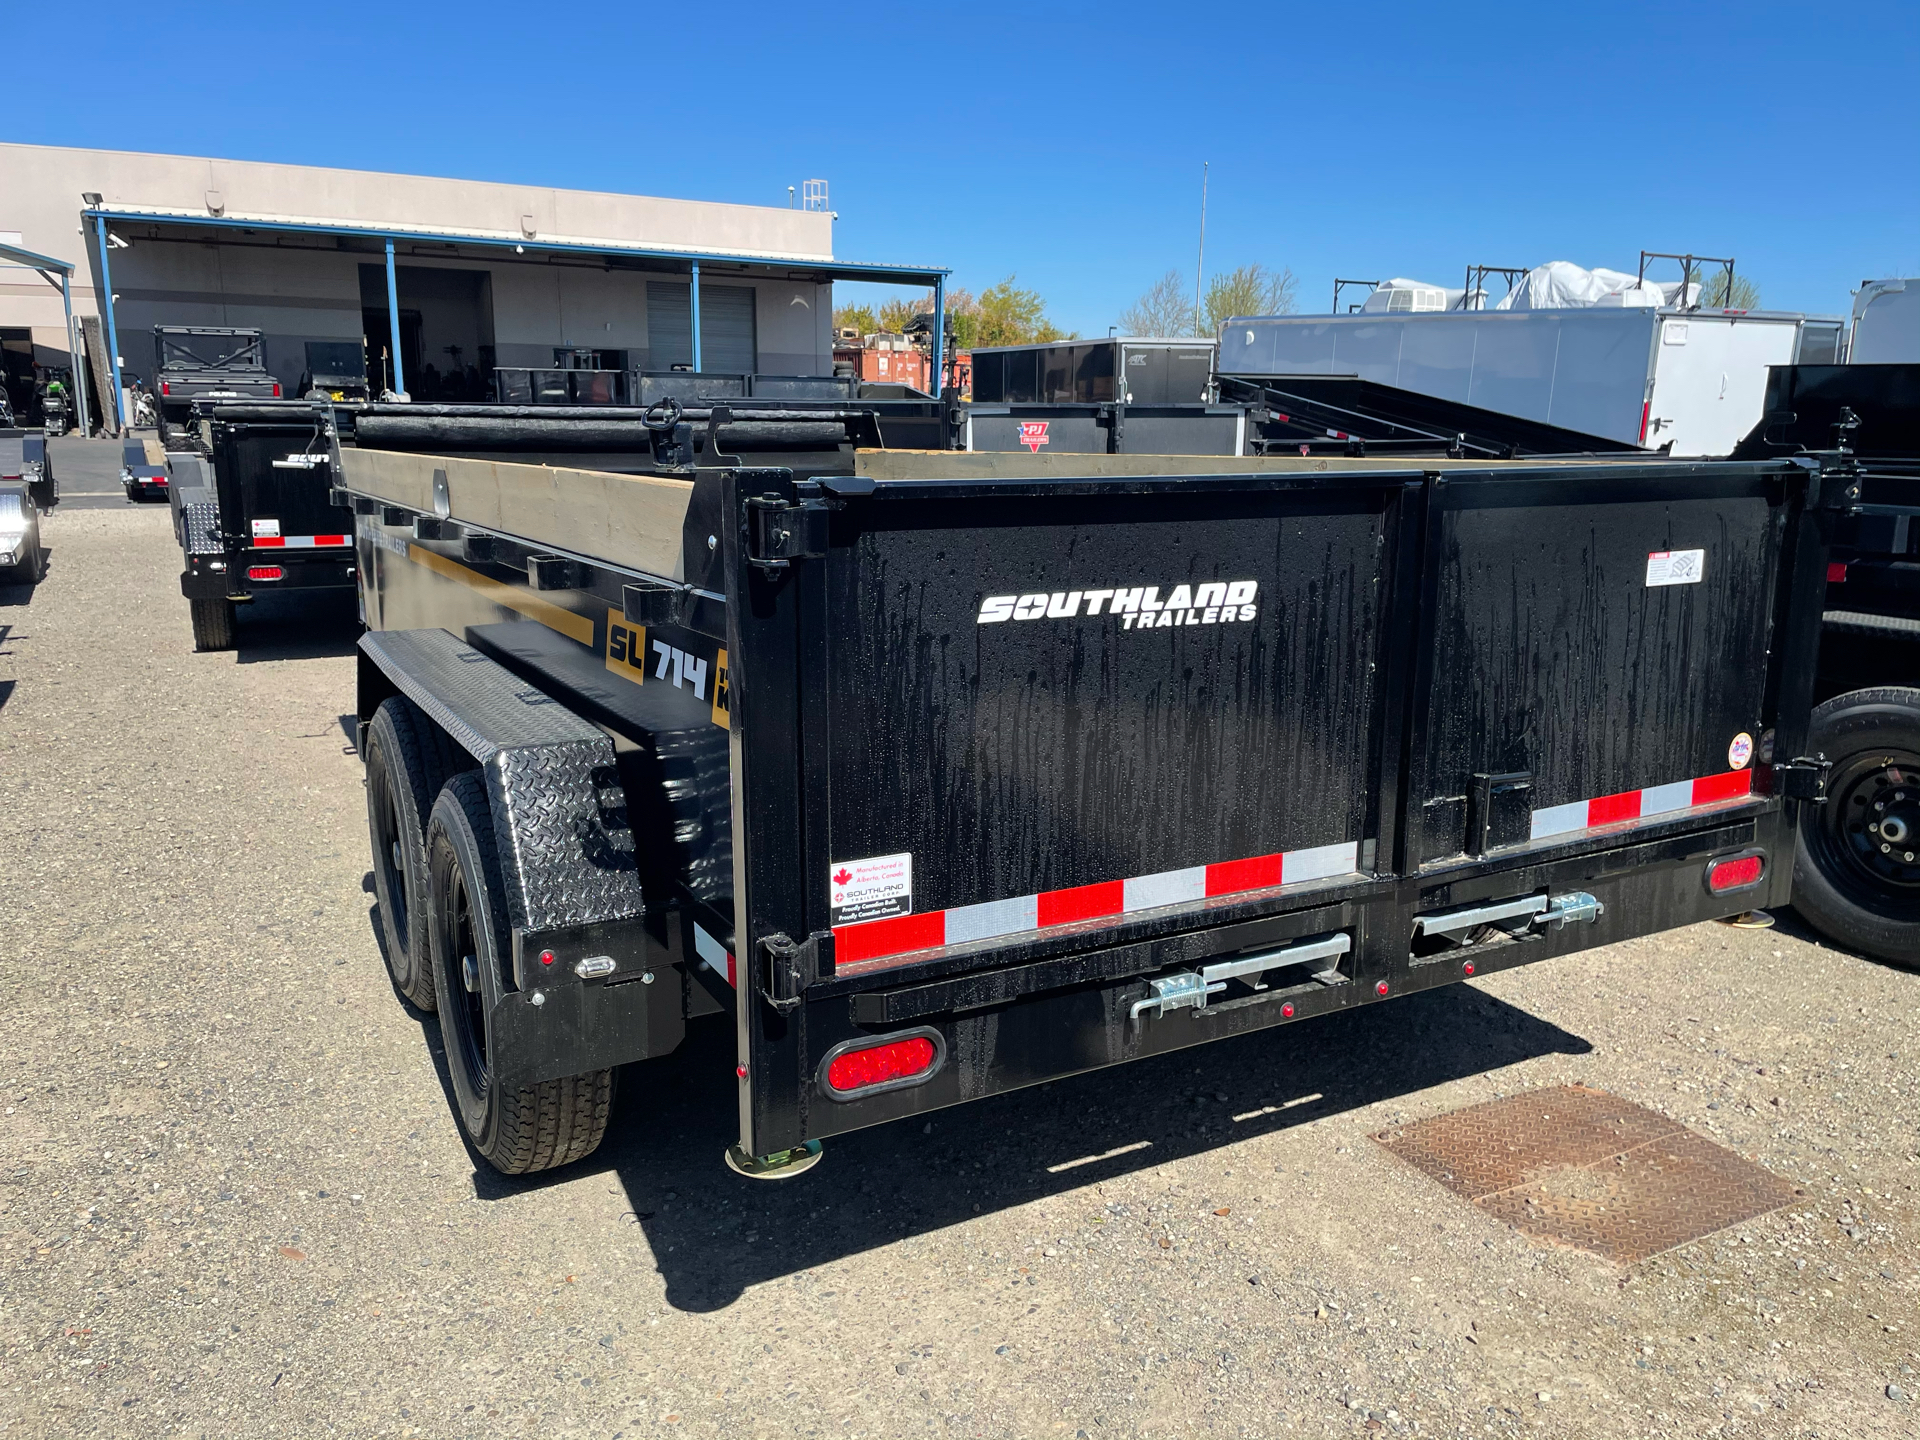 2021 SOUTHLAND TRAILER CORP SL714-14K DUMP in Elk Grove, California - Photo 2